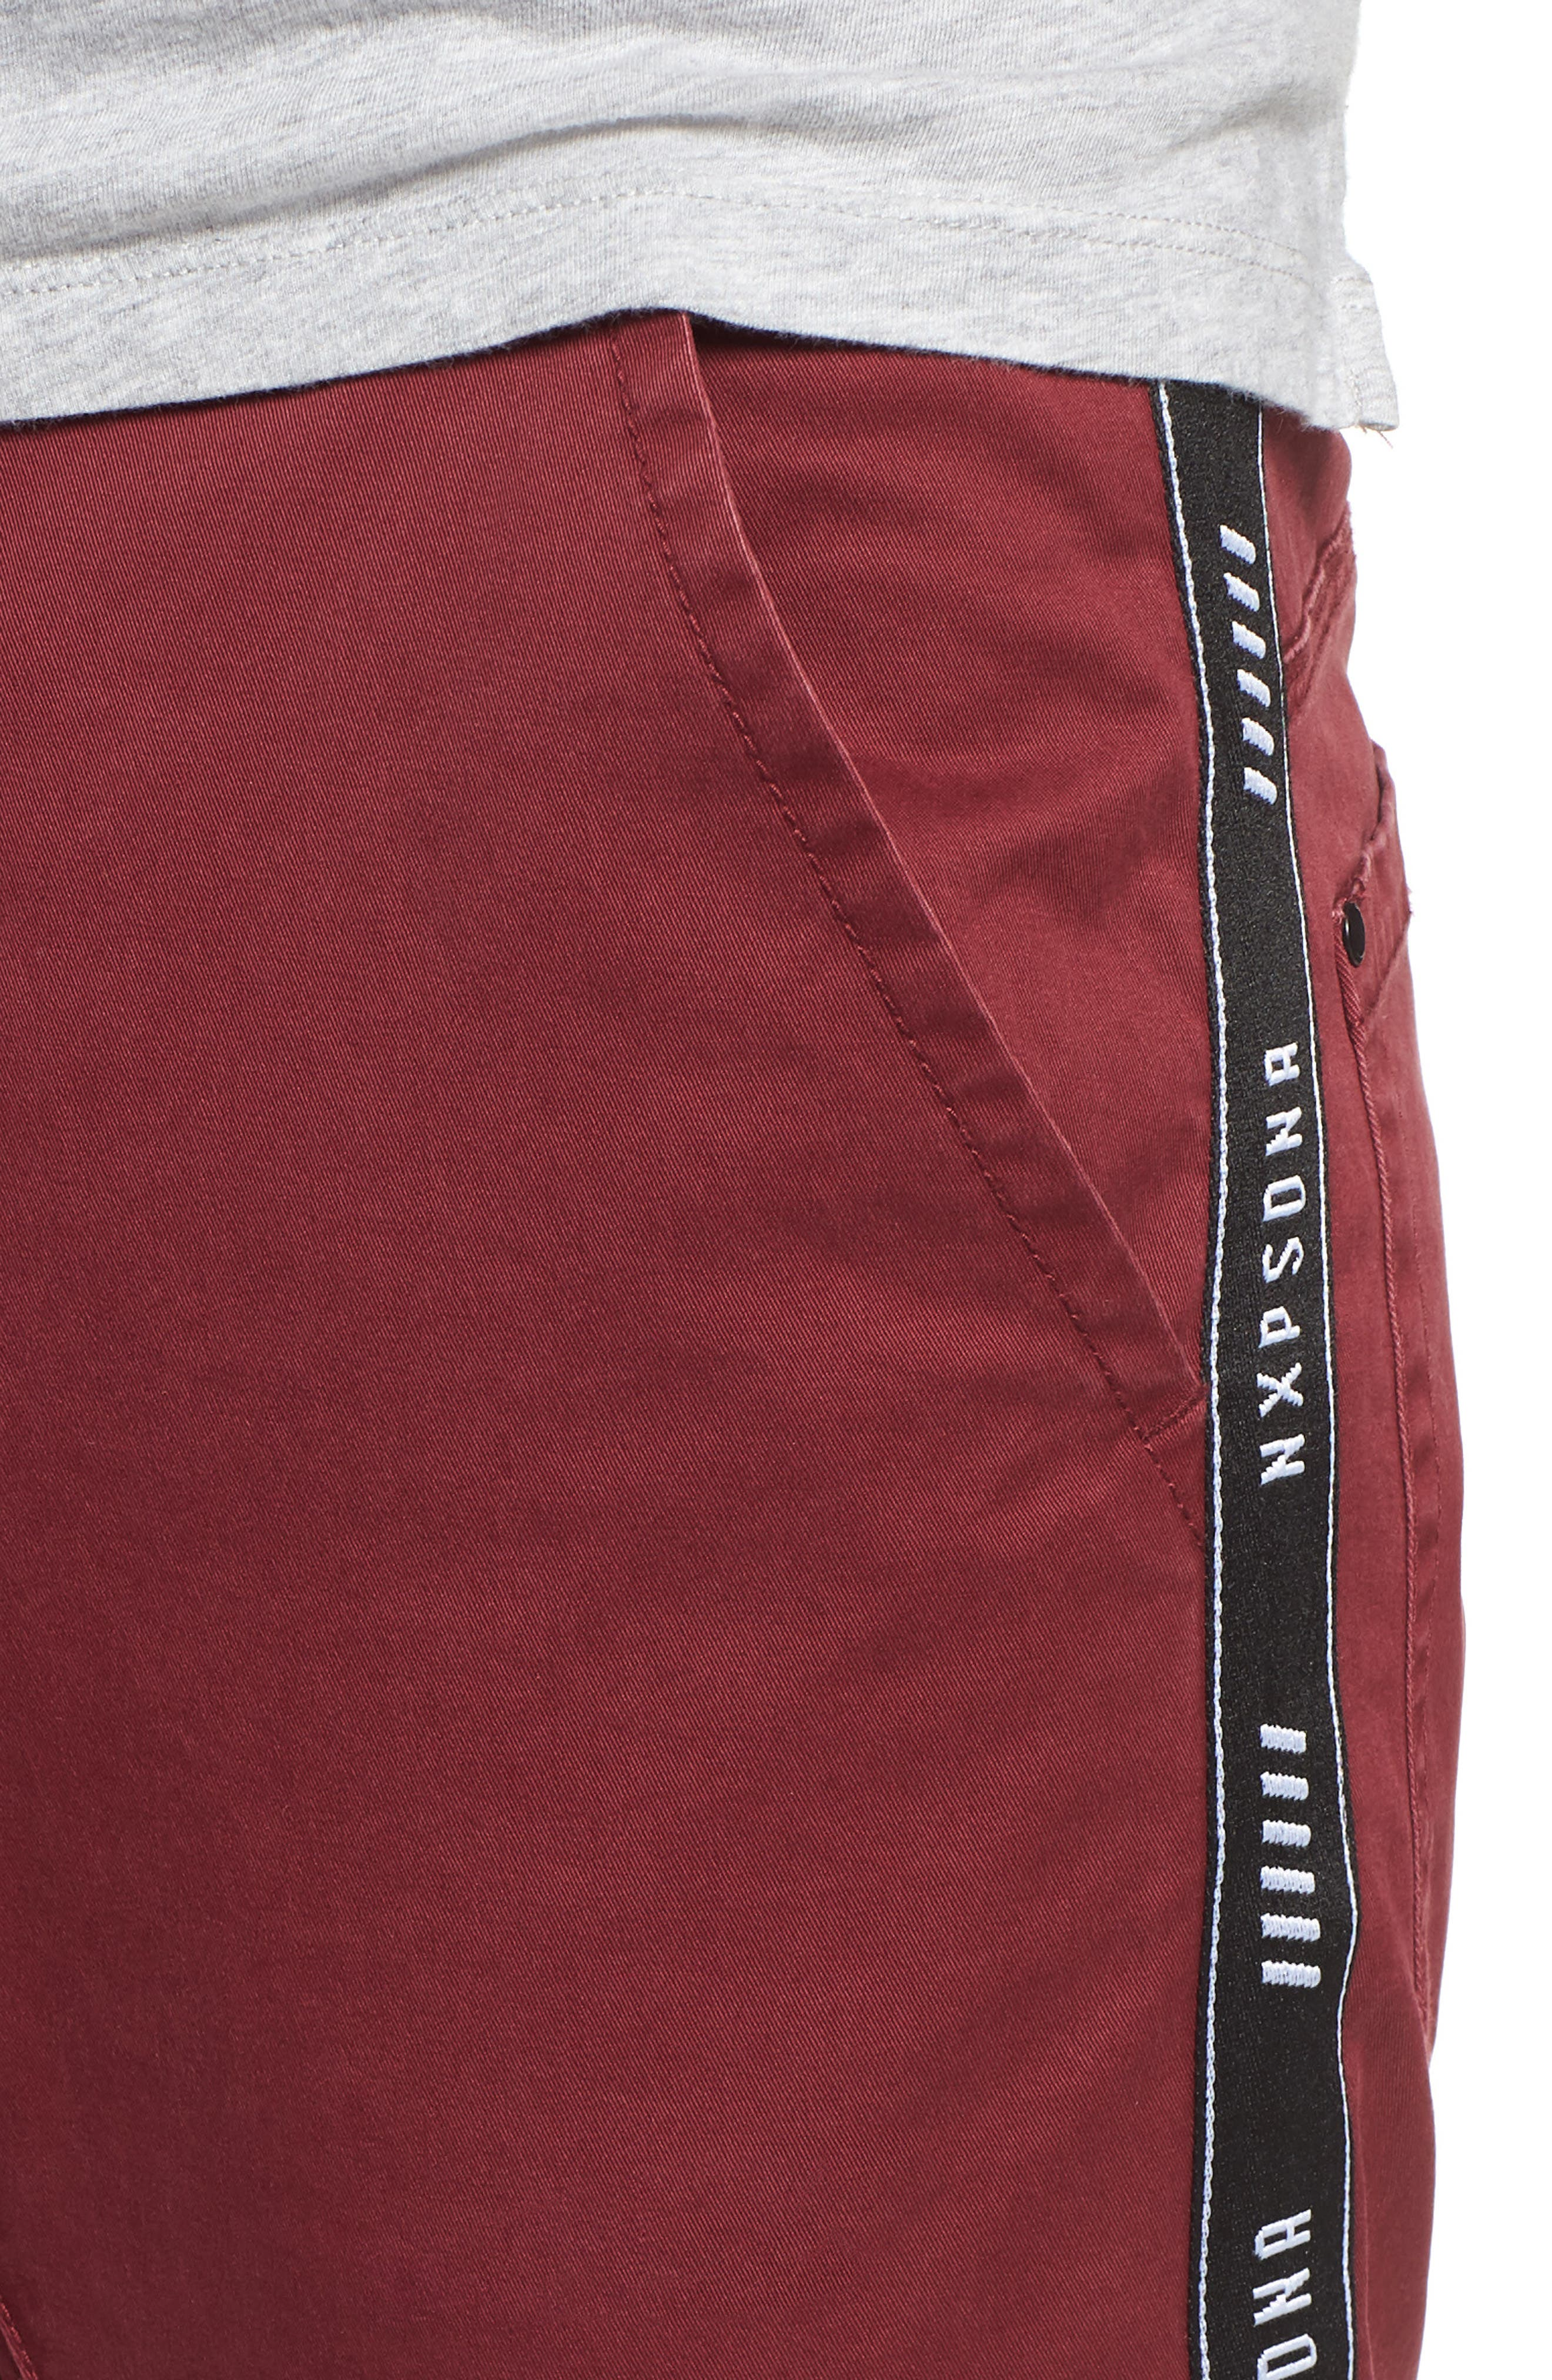 Firebrand Taped Chinos,                             Alternate thumbnail 4, color,                             BORDEAUX